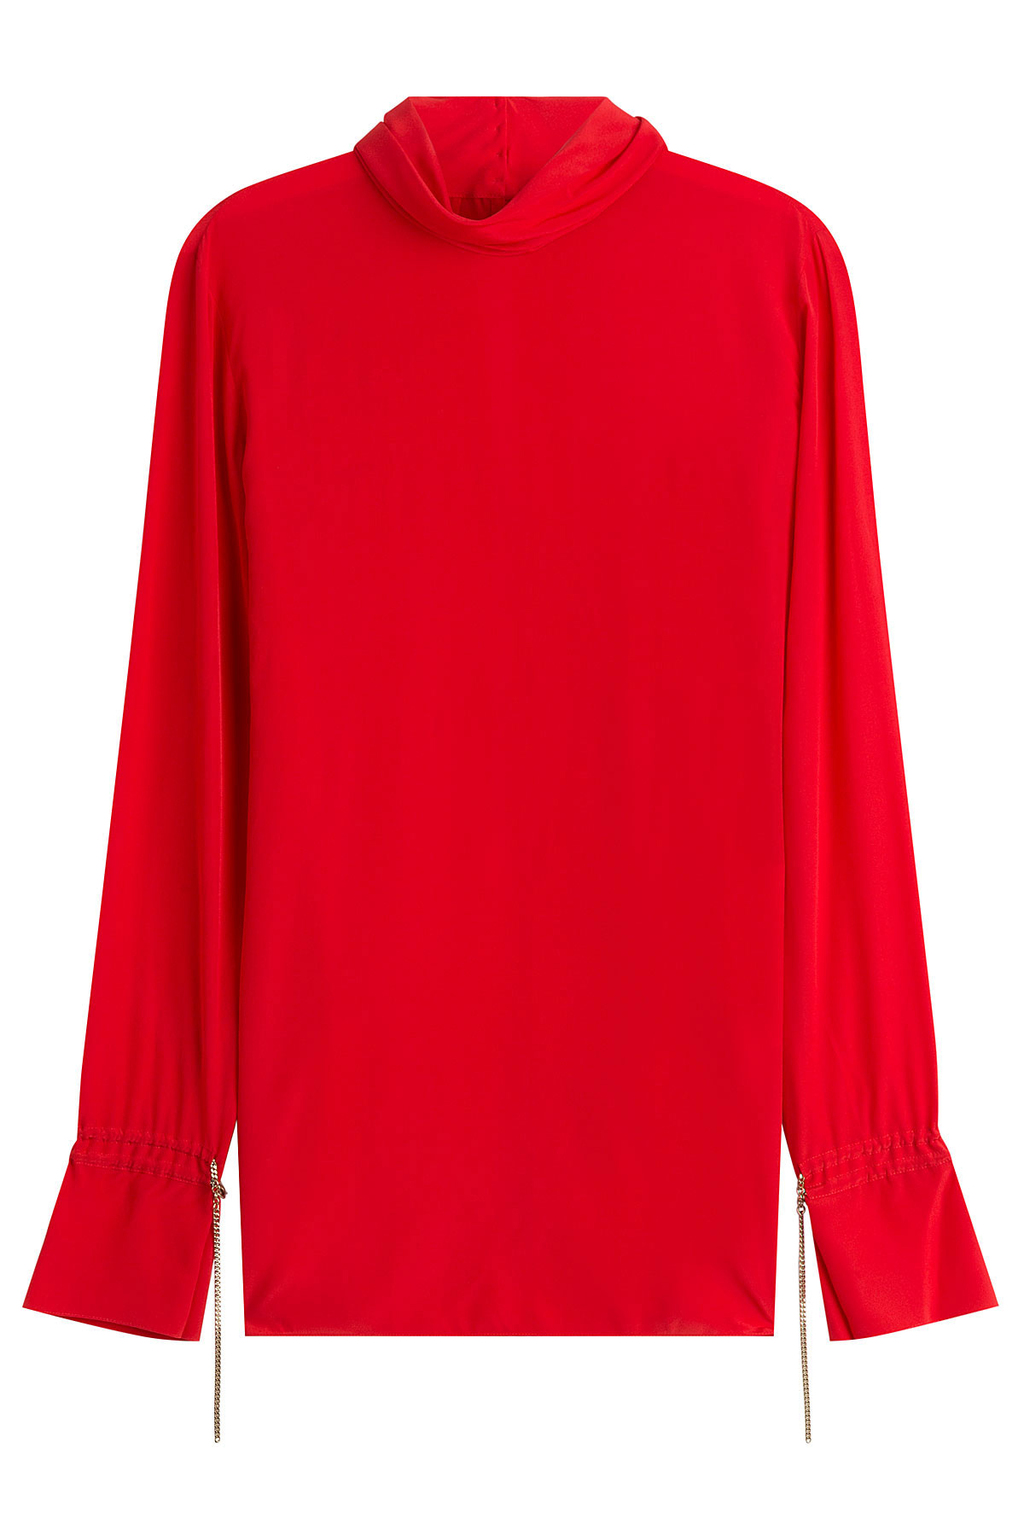 Silk Blouse With Chain Embellishment Red - pattern: plain; neckline: roll neck; style: blouse; predominant colour: true red; occasions: casual; length: standard; fibres: silk - 100%; fit: body skimming; sleeve length: long sleeve; sleeve style: standard; texture group: silky - light; pattern type: fabric; season: a/w 2016